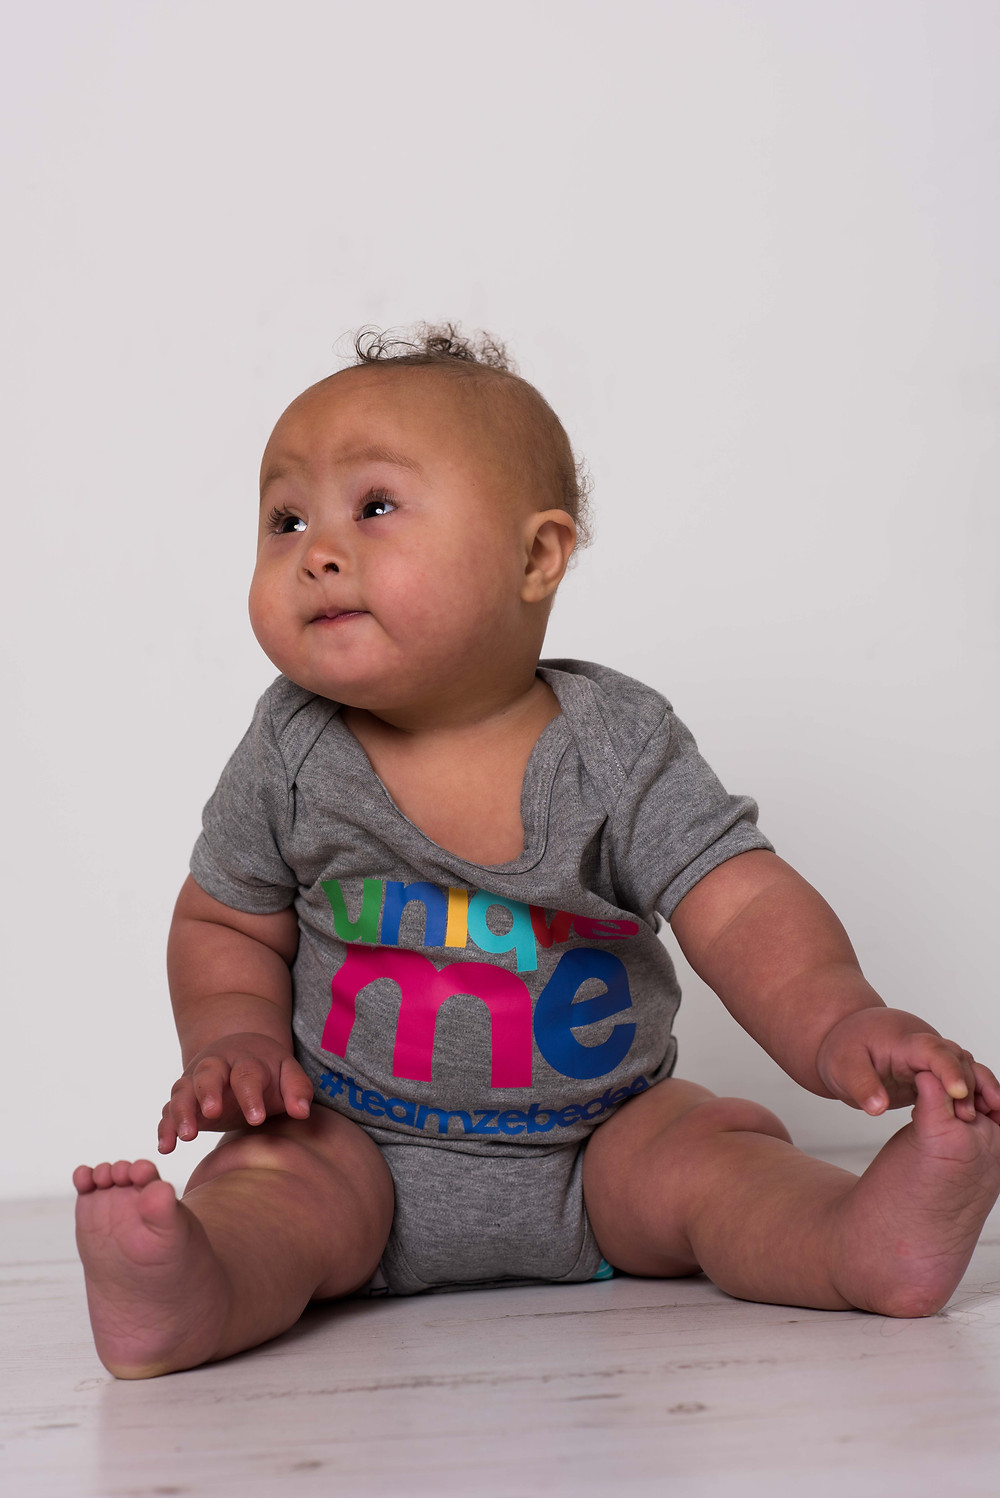 Disabled baby model Zephy, who has Down Syndrome